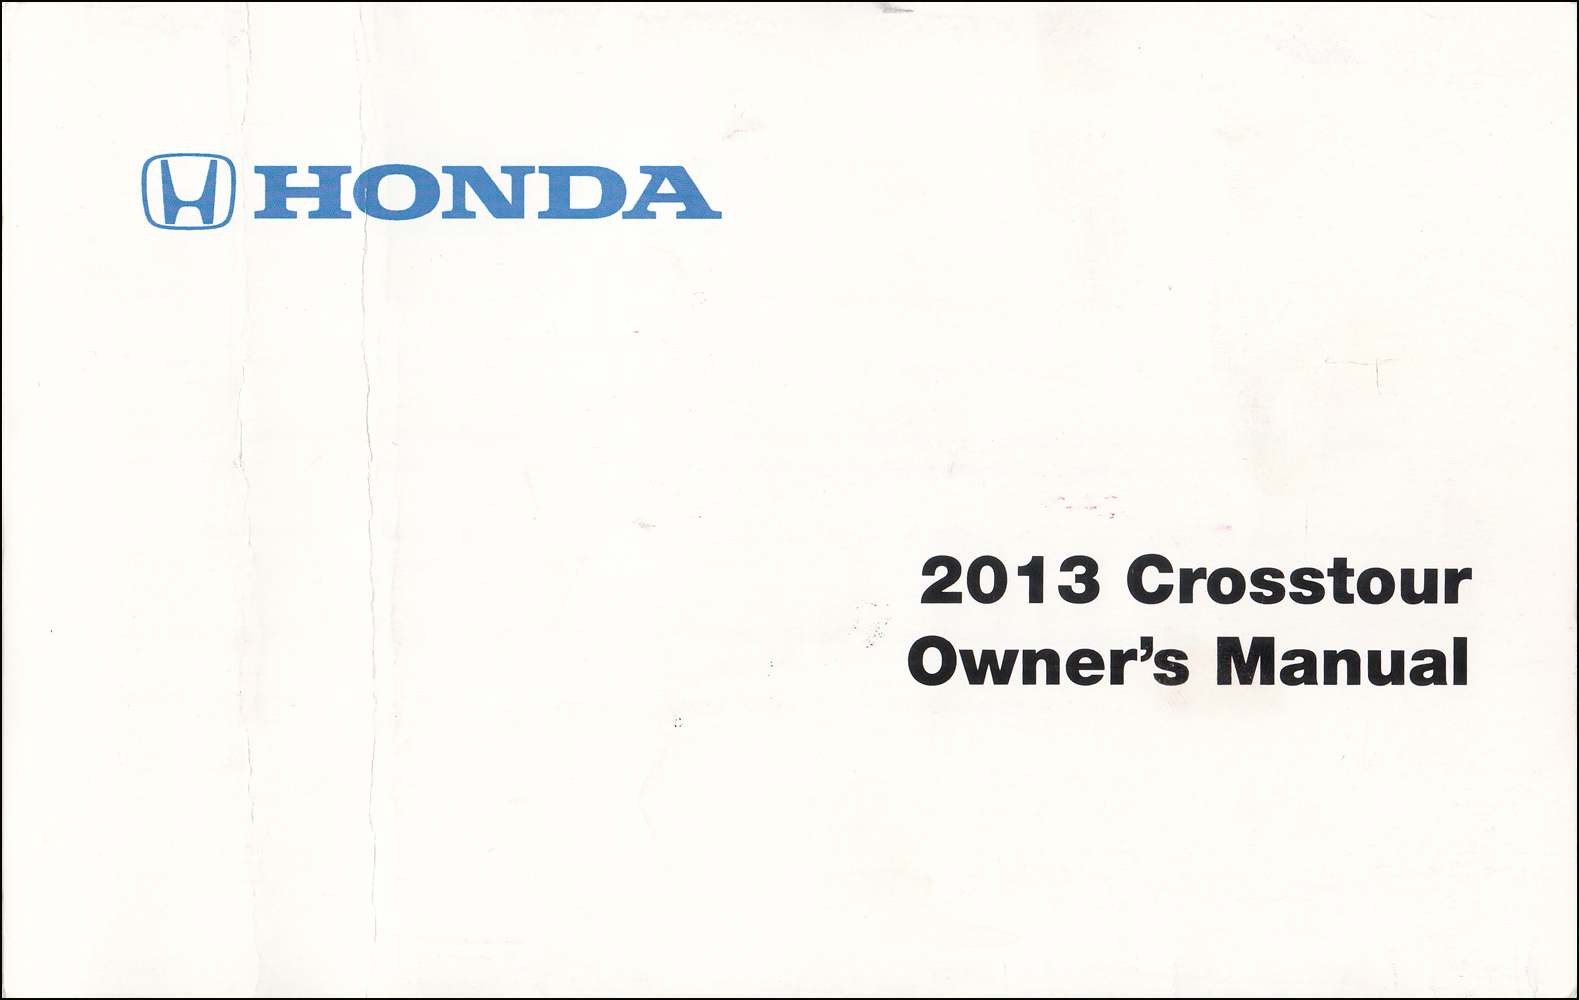 2013 Honda Crosstour Owner's Manual Factory Reprint